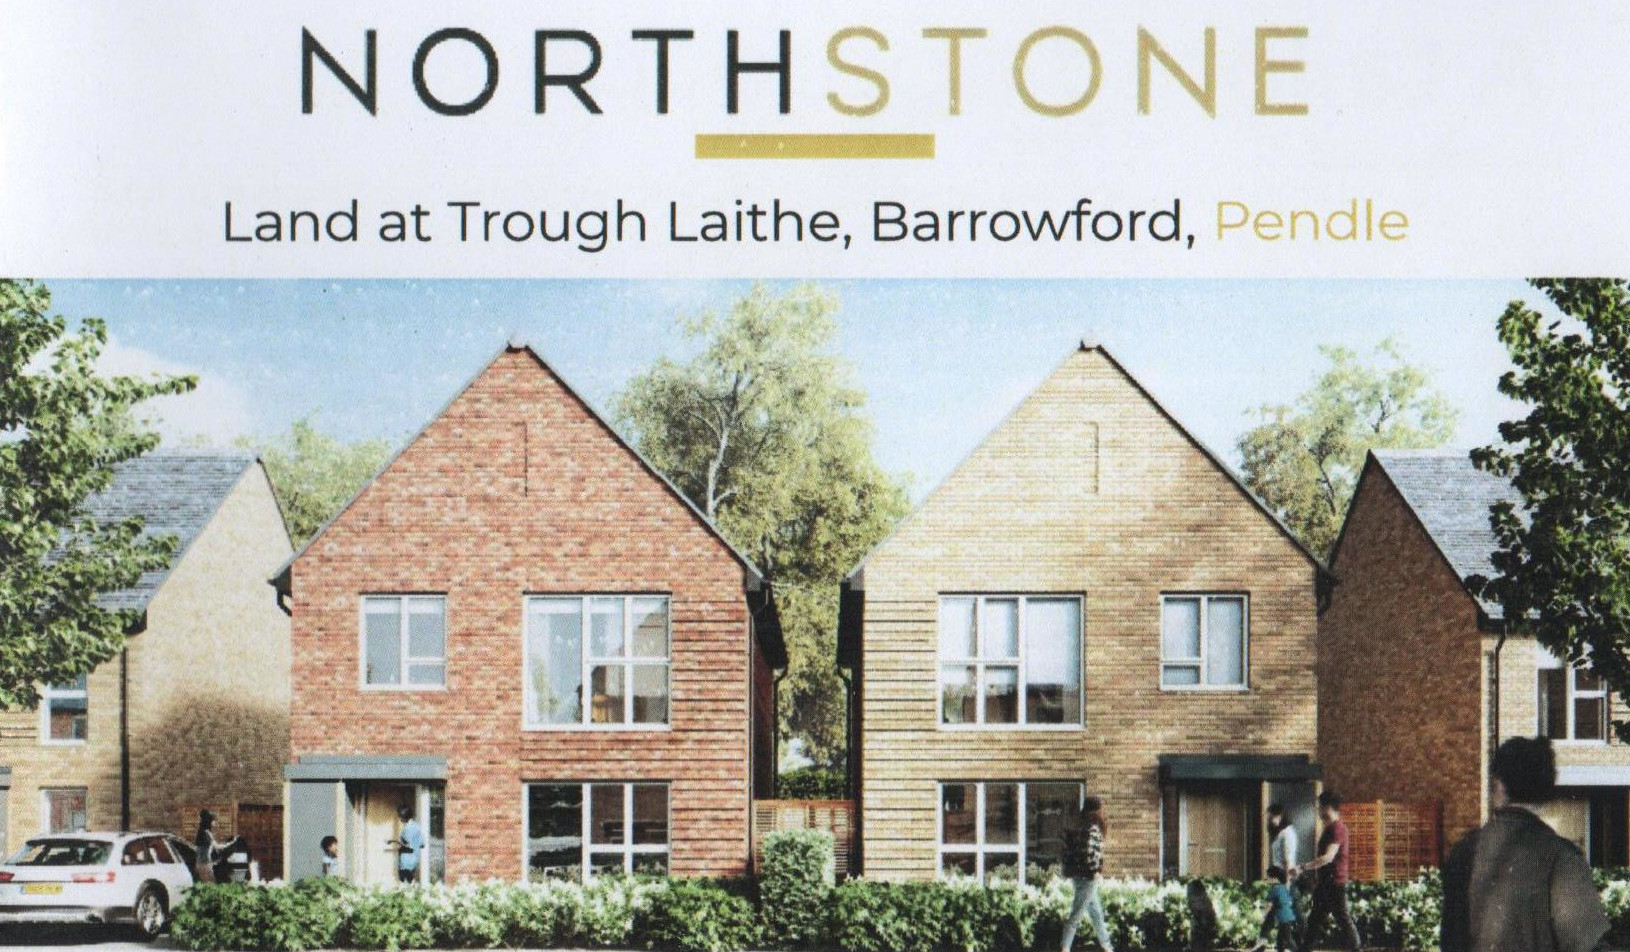 Image of North Stone houses proposed for Trough Laithe, Barrowford